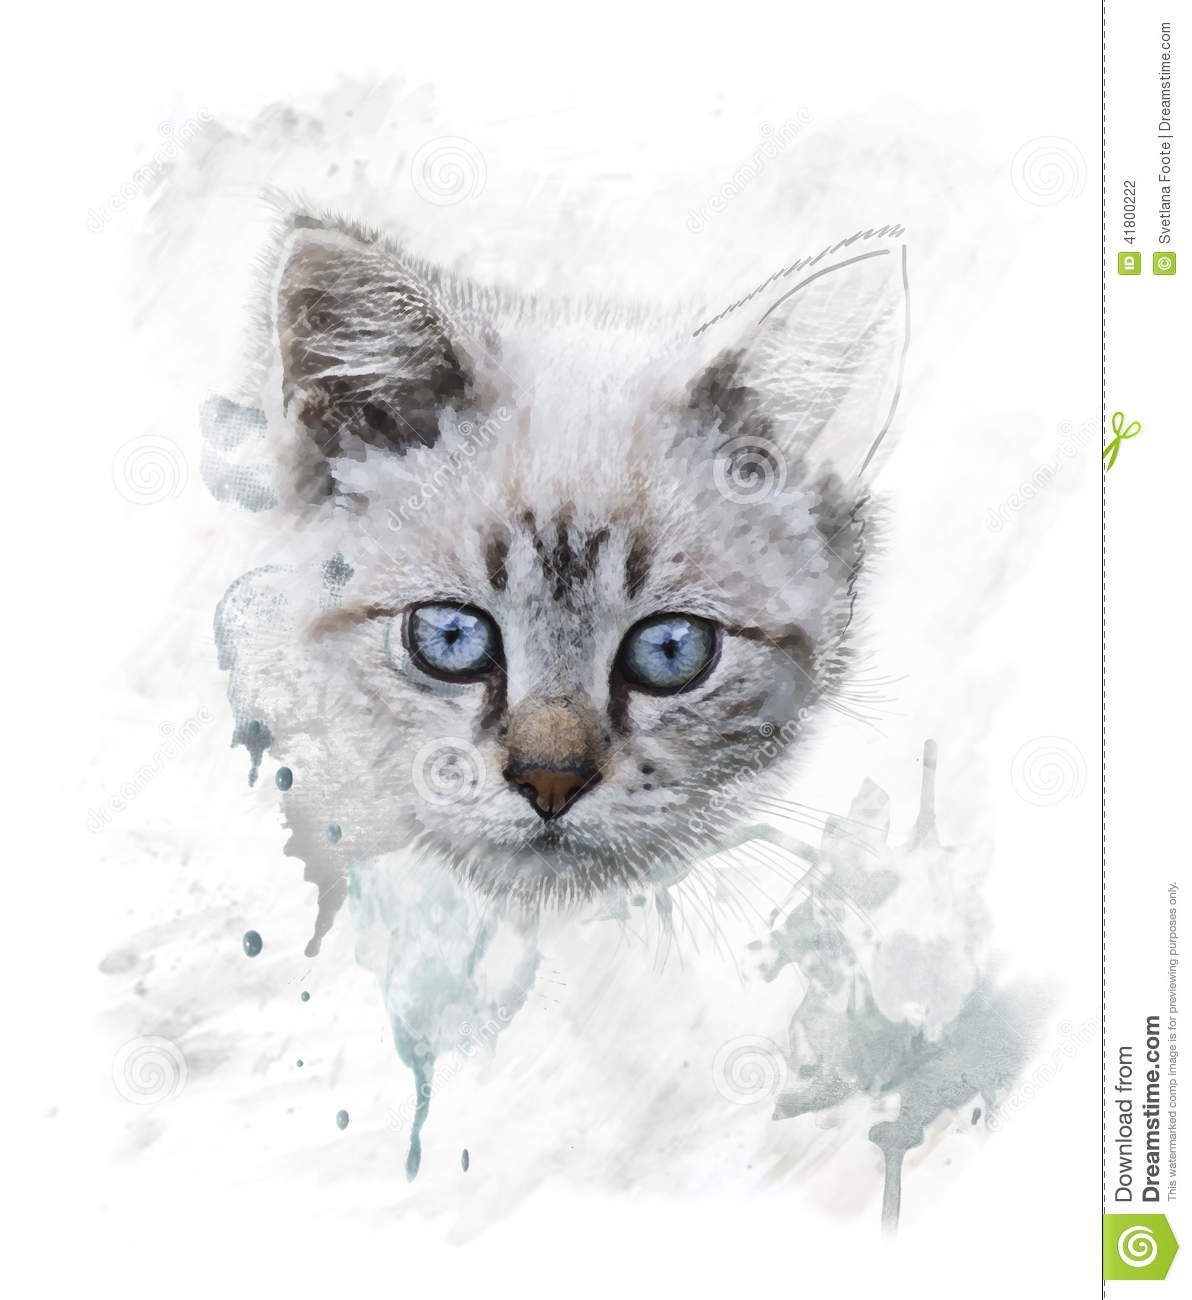 watercolor portrait of young cat stock illustration. Black Bedroom Furniture Sets. Home Design Ideas